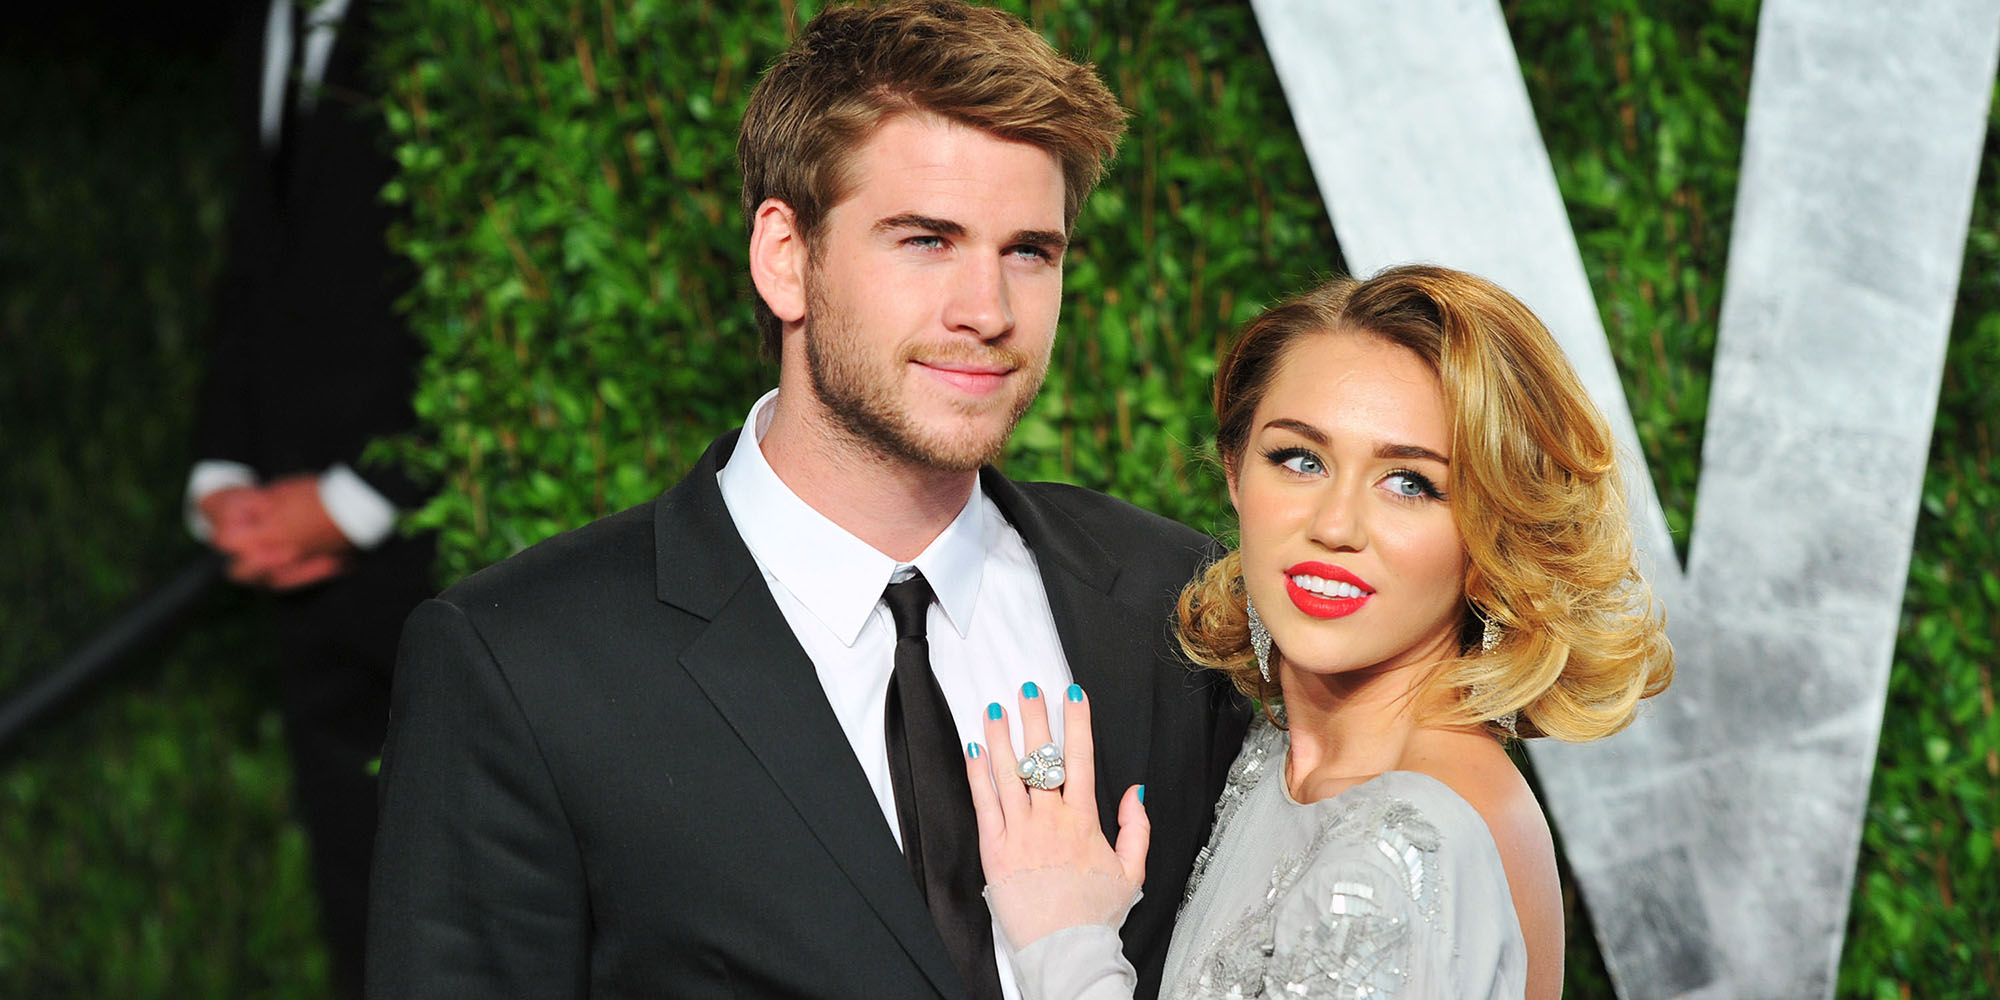 Miley Cyrus and Liam Hemsworth in The Last Song. (Photo: Archive)